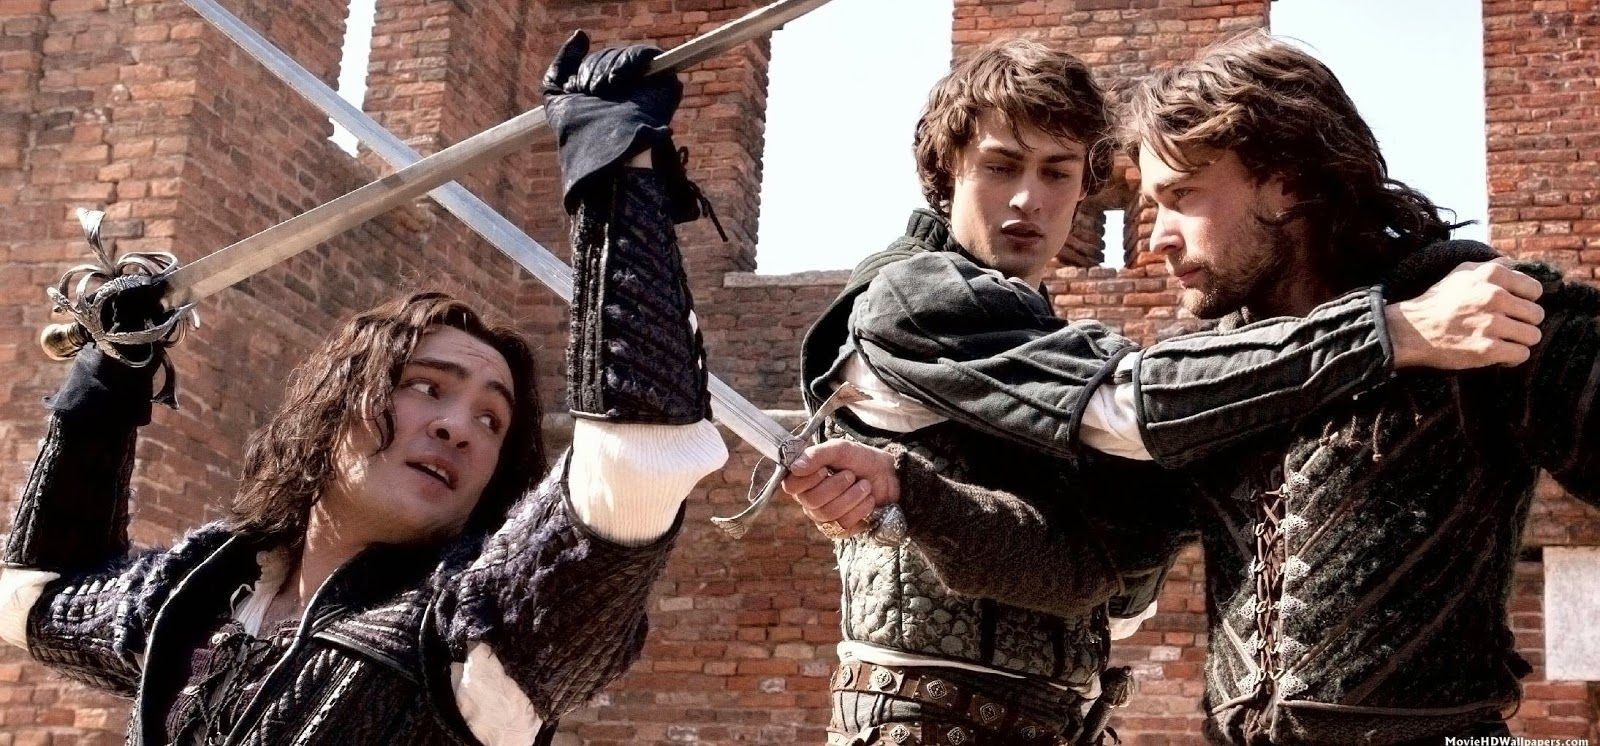 mercutio tybalt romeo juliet movie review romeo and mercutio tybalt romeo juliet 2013 movie review